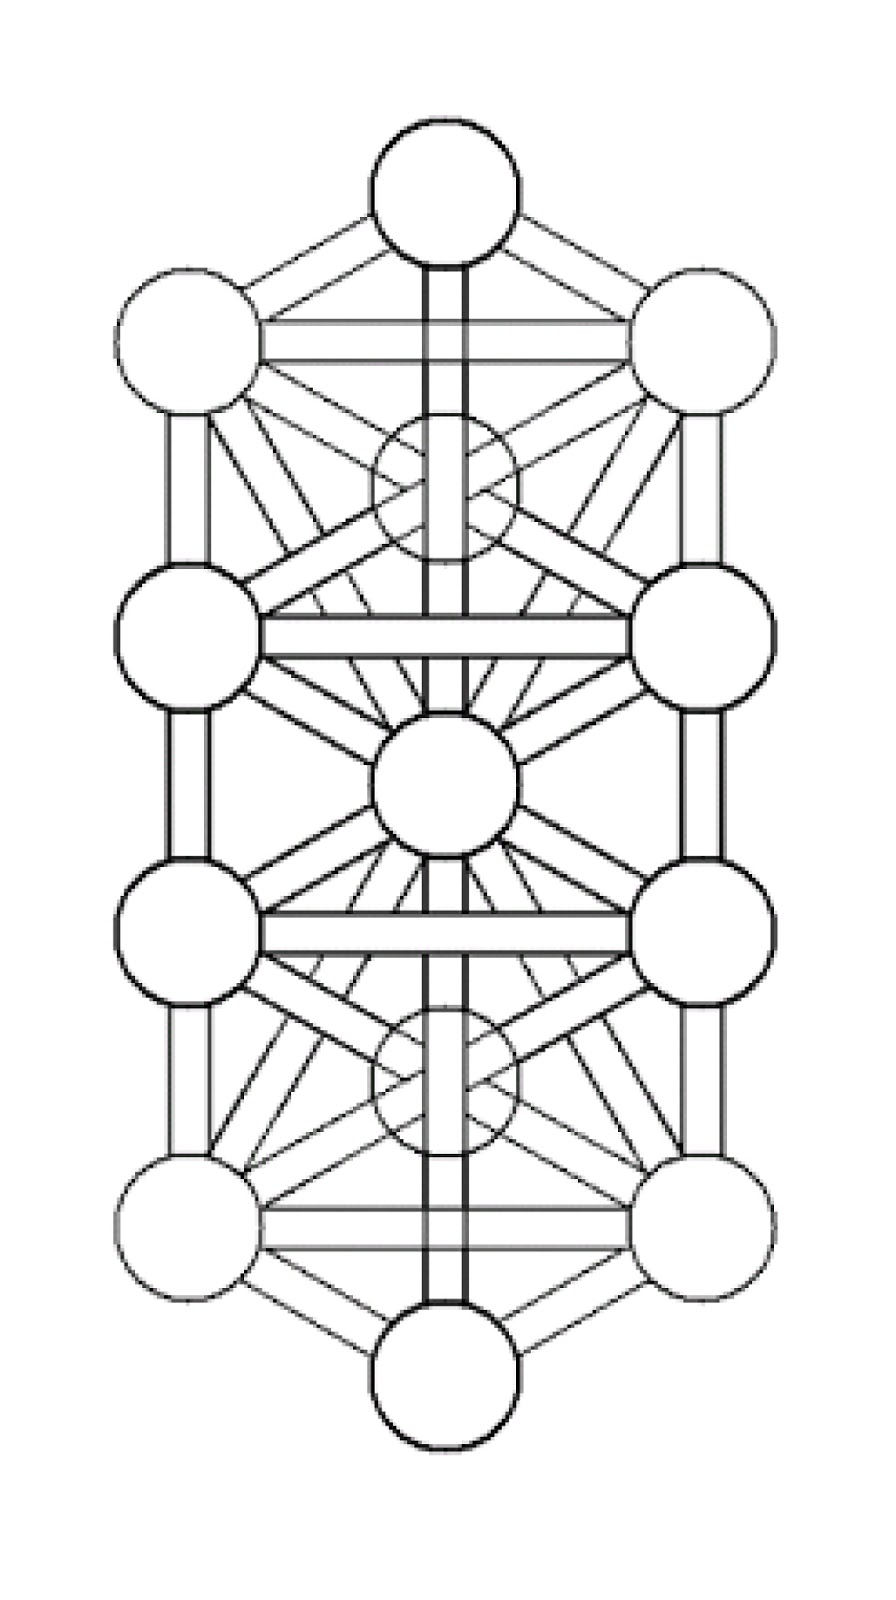 Iva kenaz kabbalistic tree of life as above so below the hebrew alphabet and the nordic runes may actually be derived from the six pointed star patterns hagalaz another symbol of the tree of life biocorpaavc Choice Image